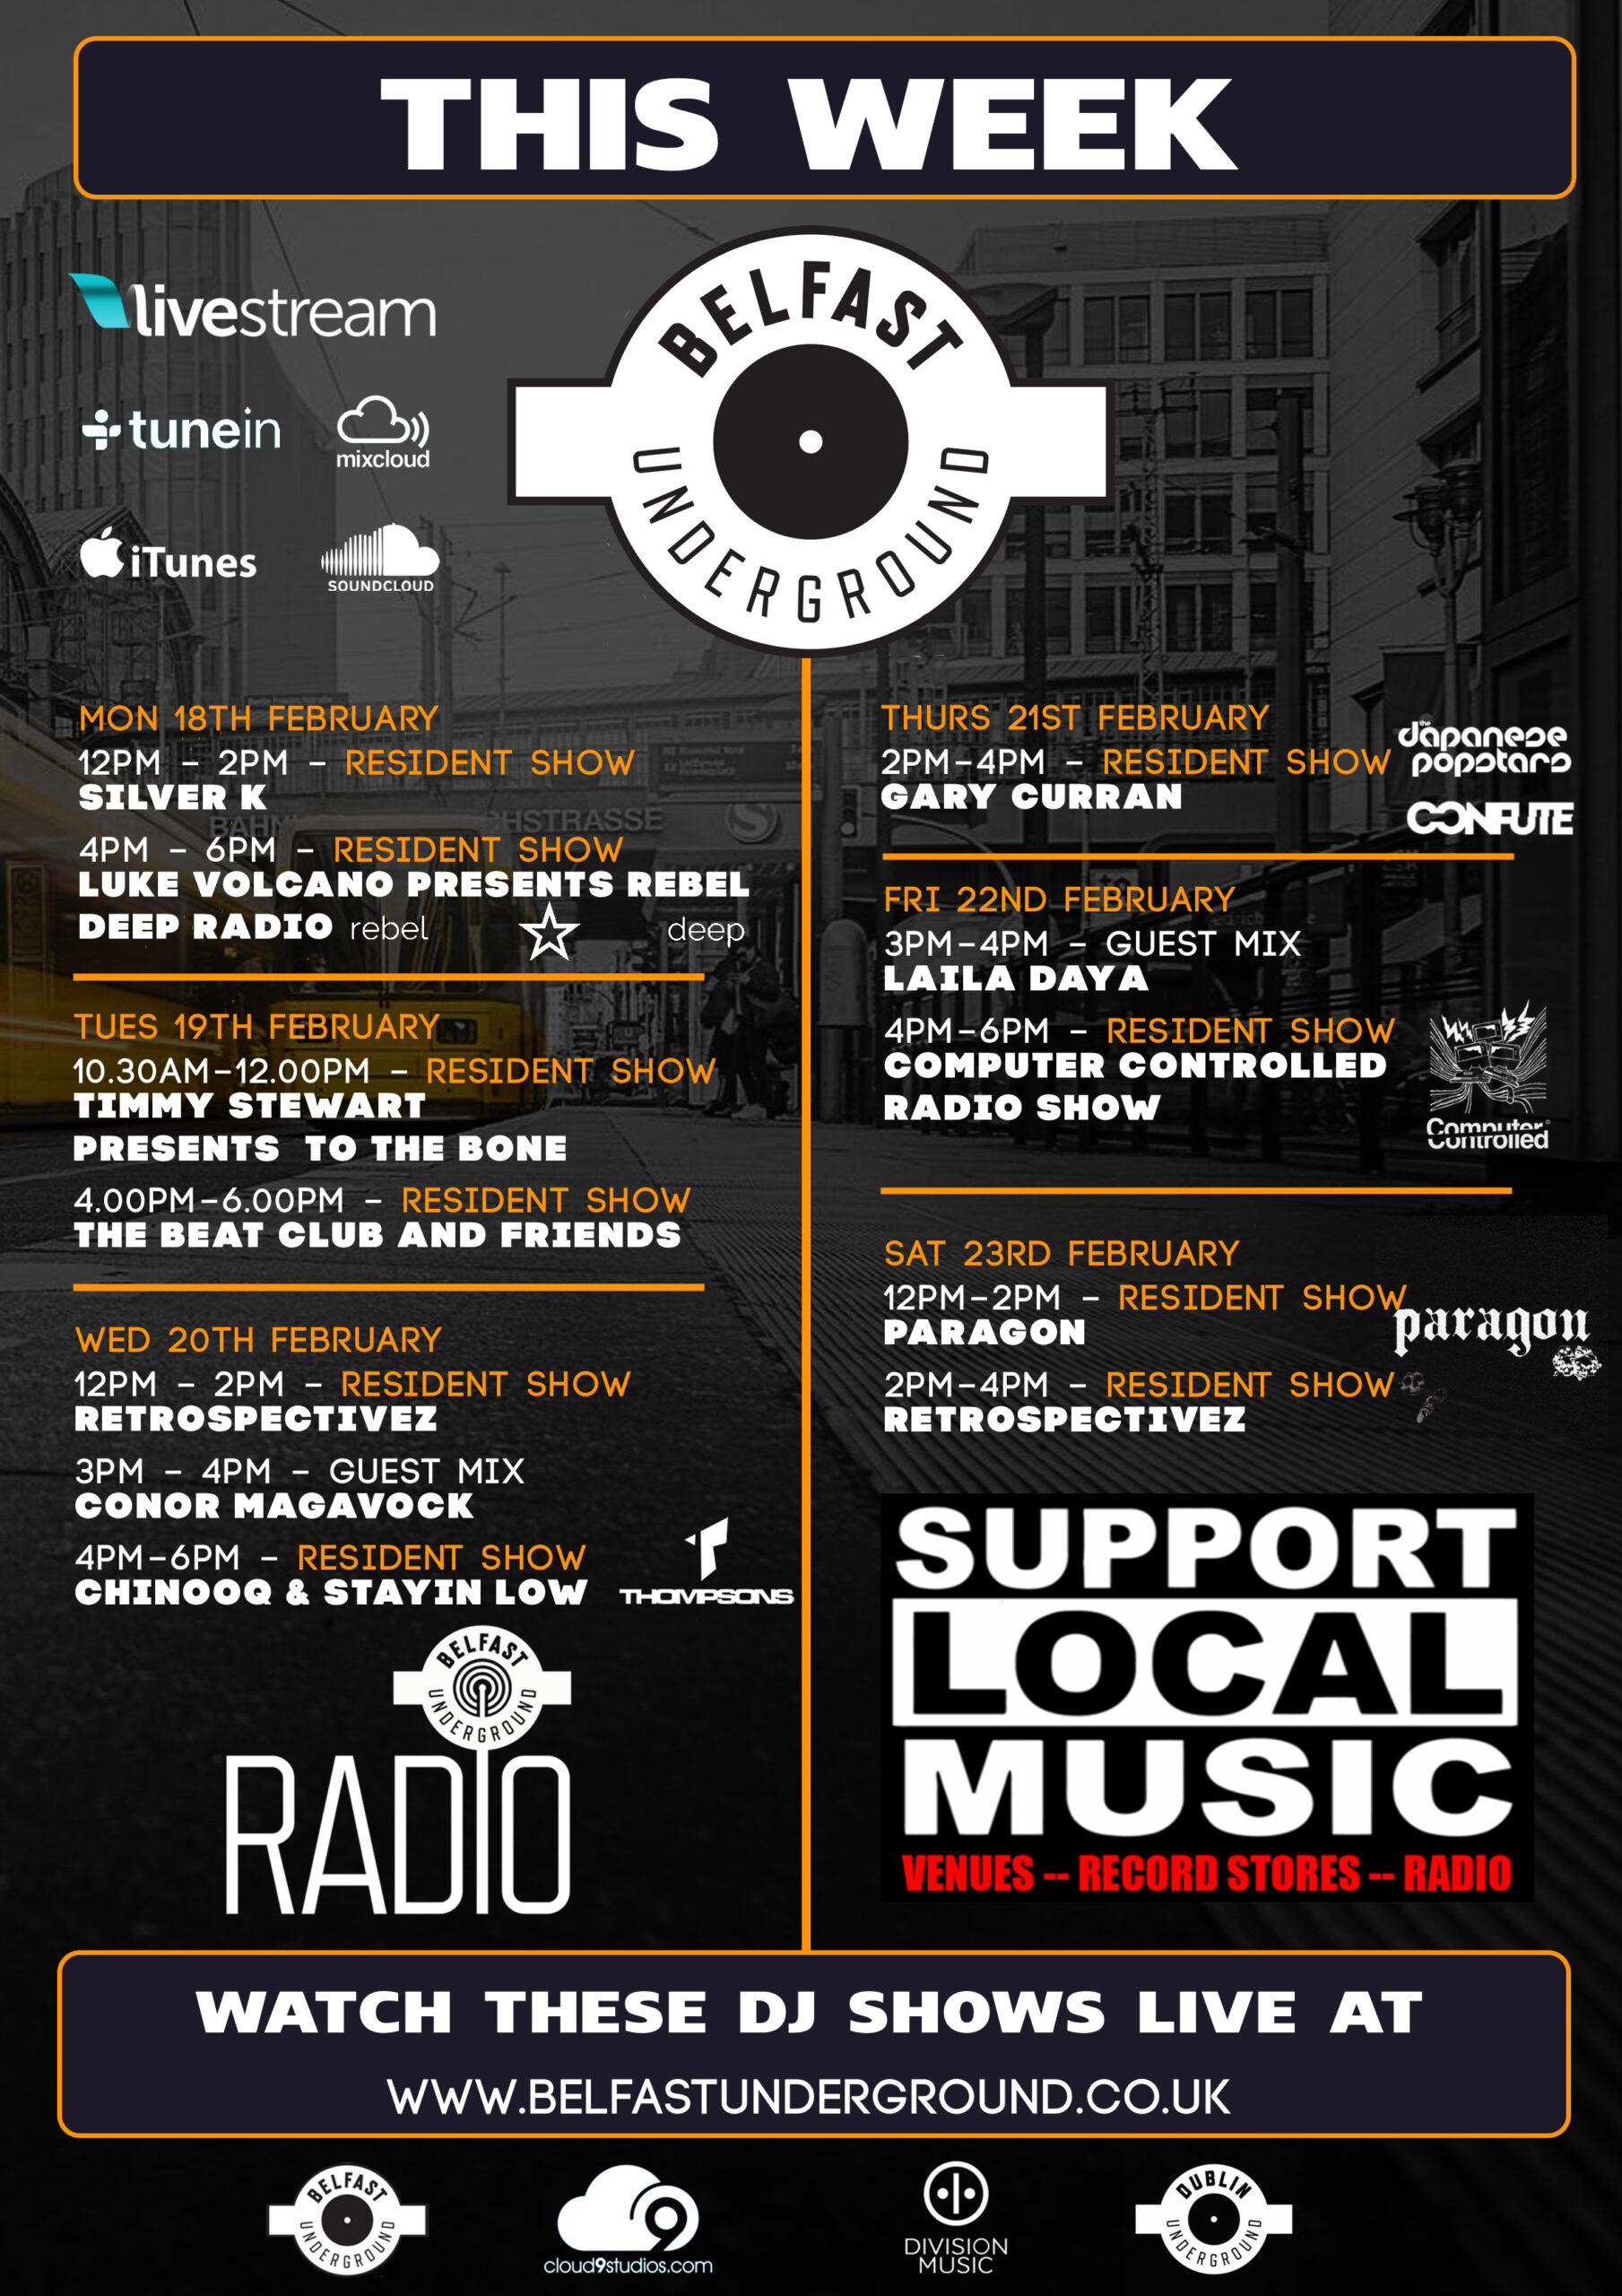 Belfast Underground Radio schedule – Week 18th Feb 2019